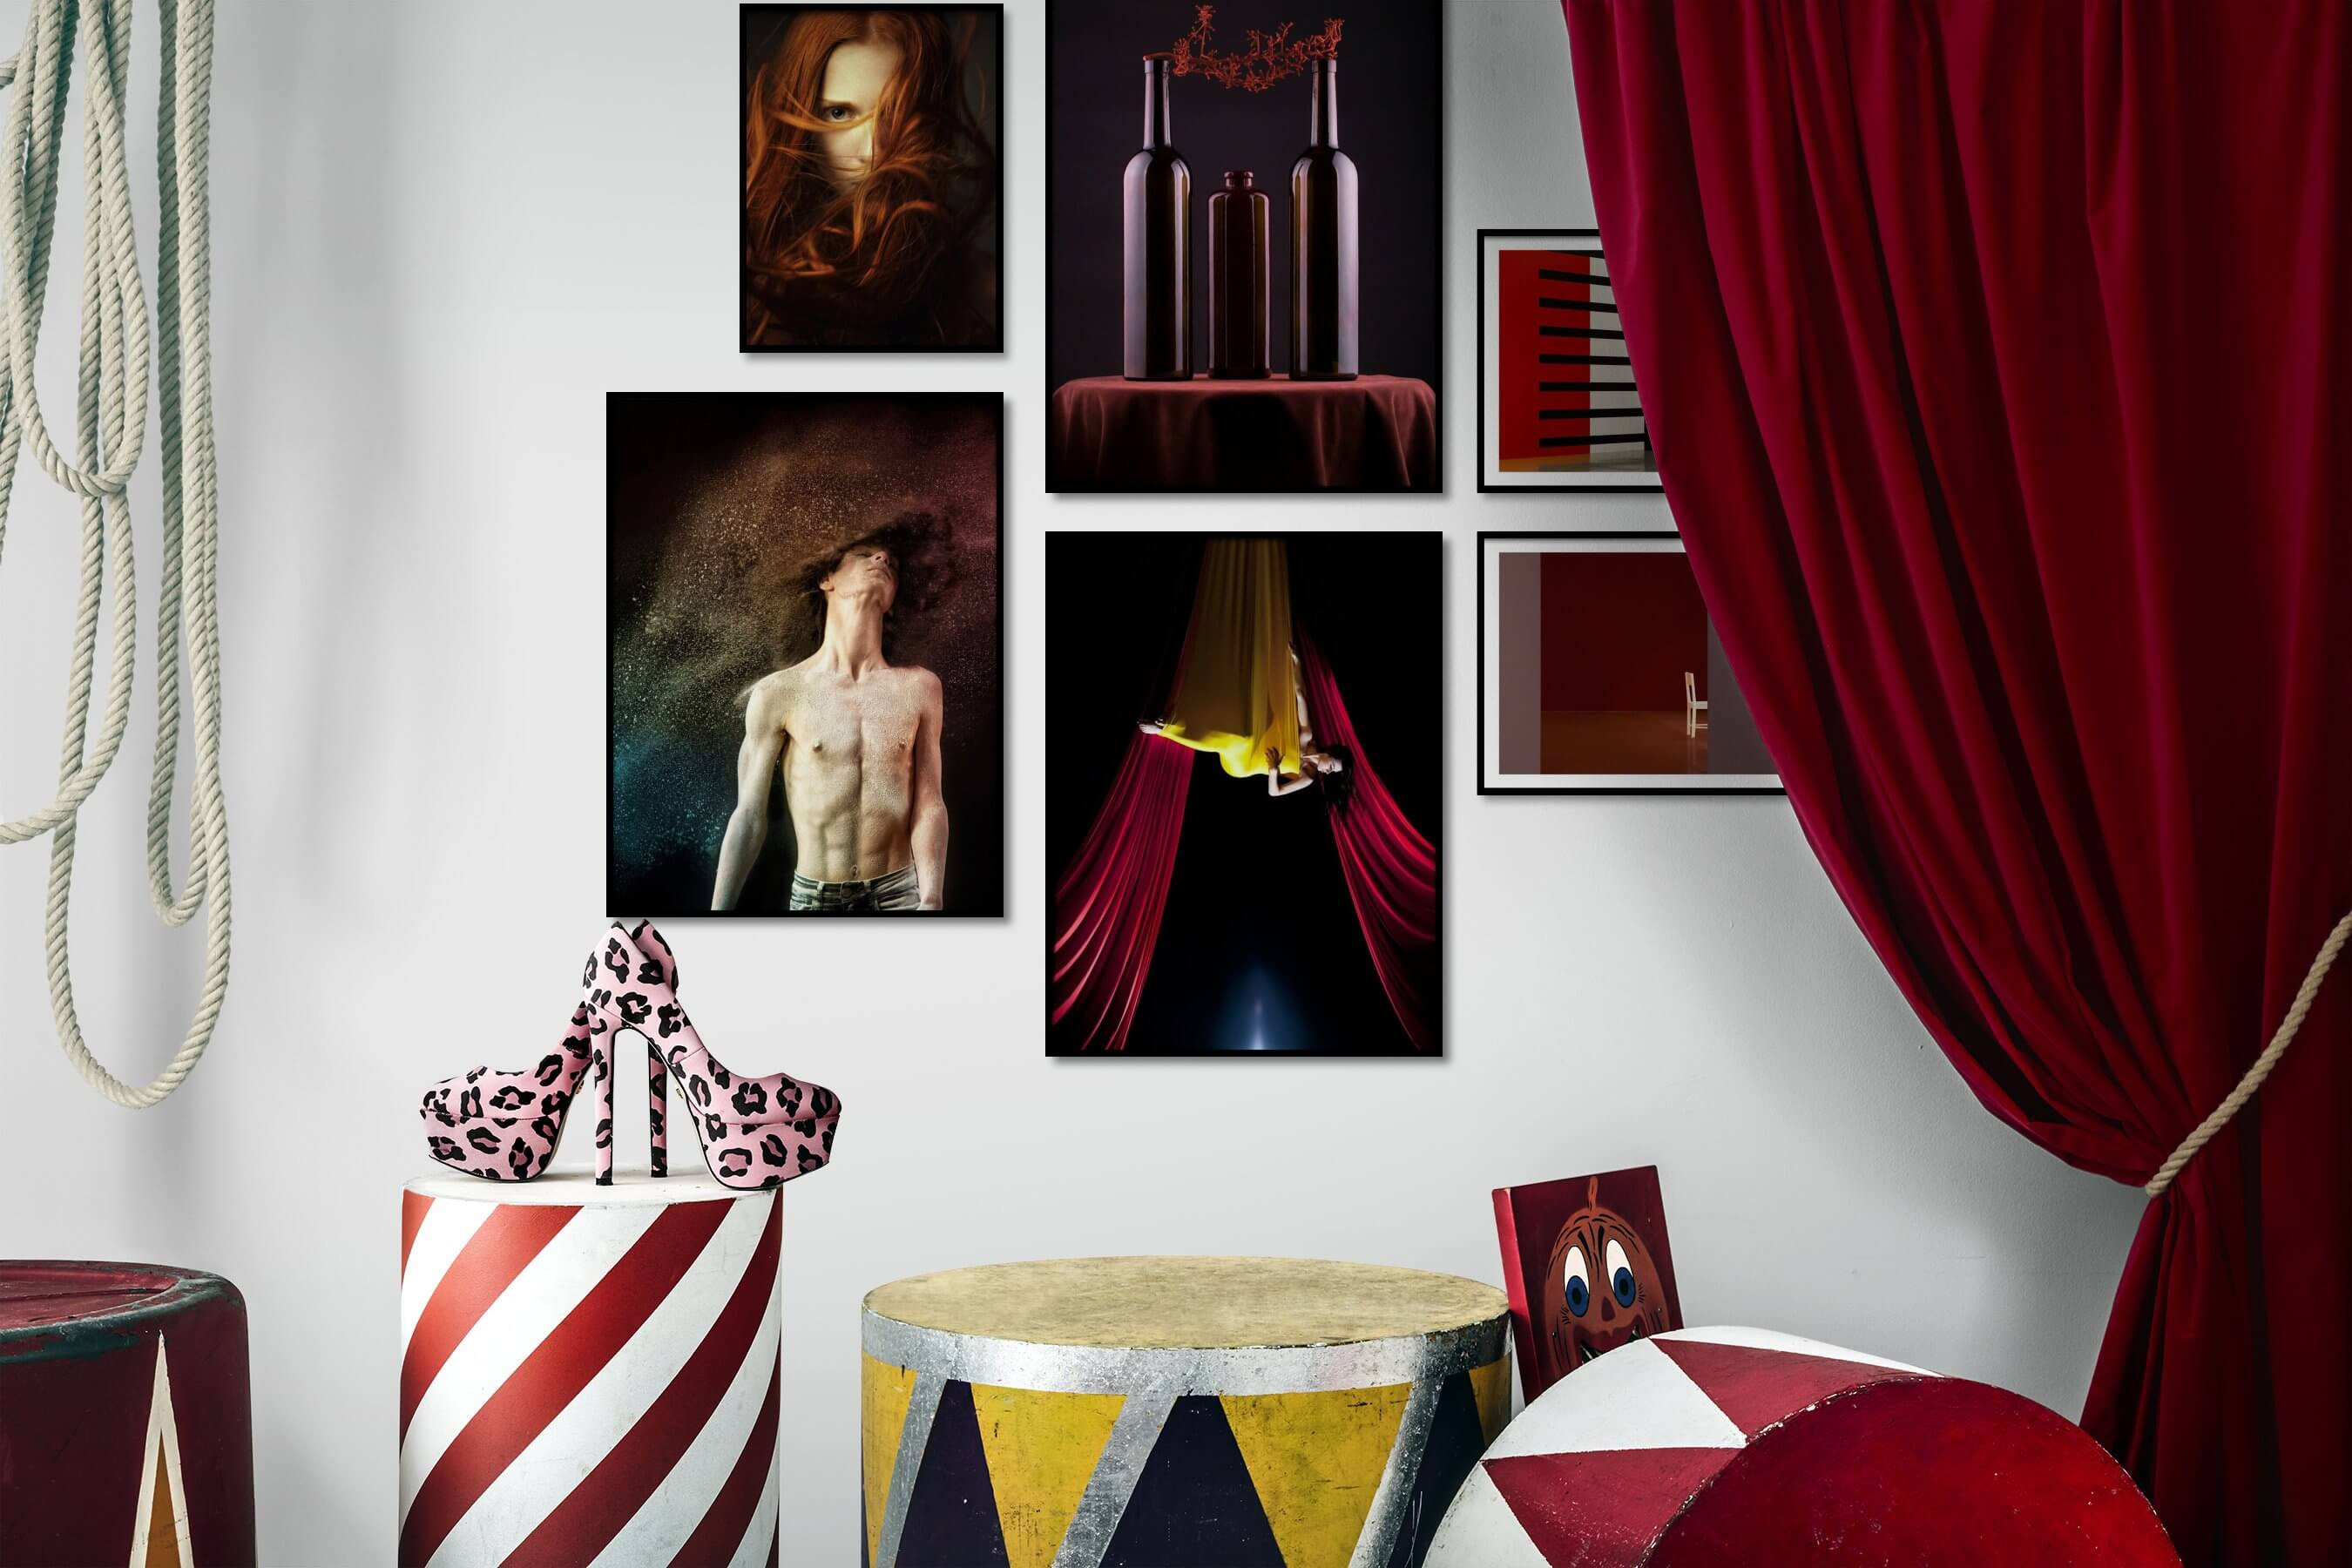 Gallery wall idea with six framed pictures arranged on a wall depicting Fashion & Beauty, Dark Tones, For the Moderate, and For the Minimalist